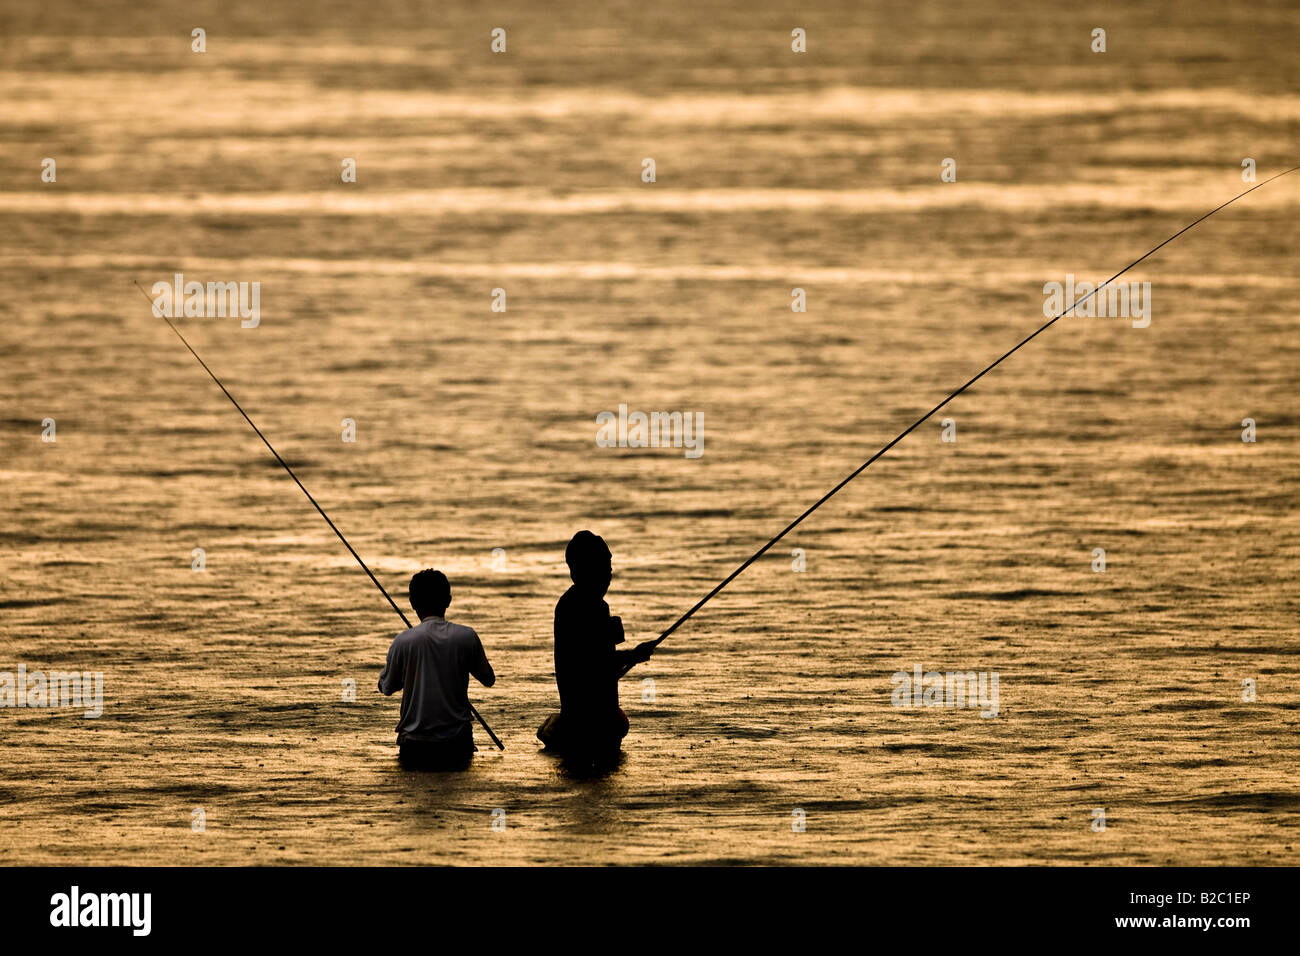 Two fishermen fishing at dusk, standing in the water under a gentle rain, Lombok Island, Indonesia, Asia - Stock Image